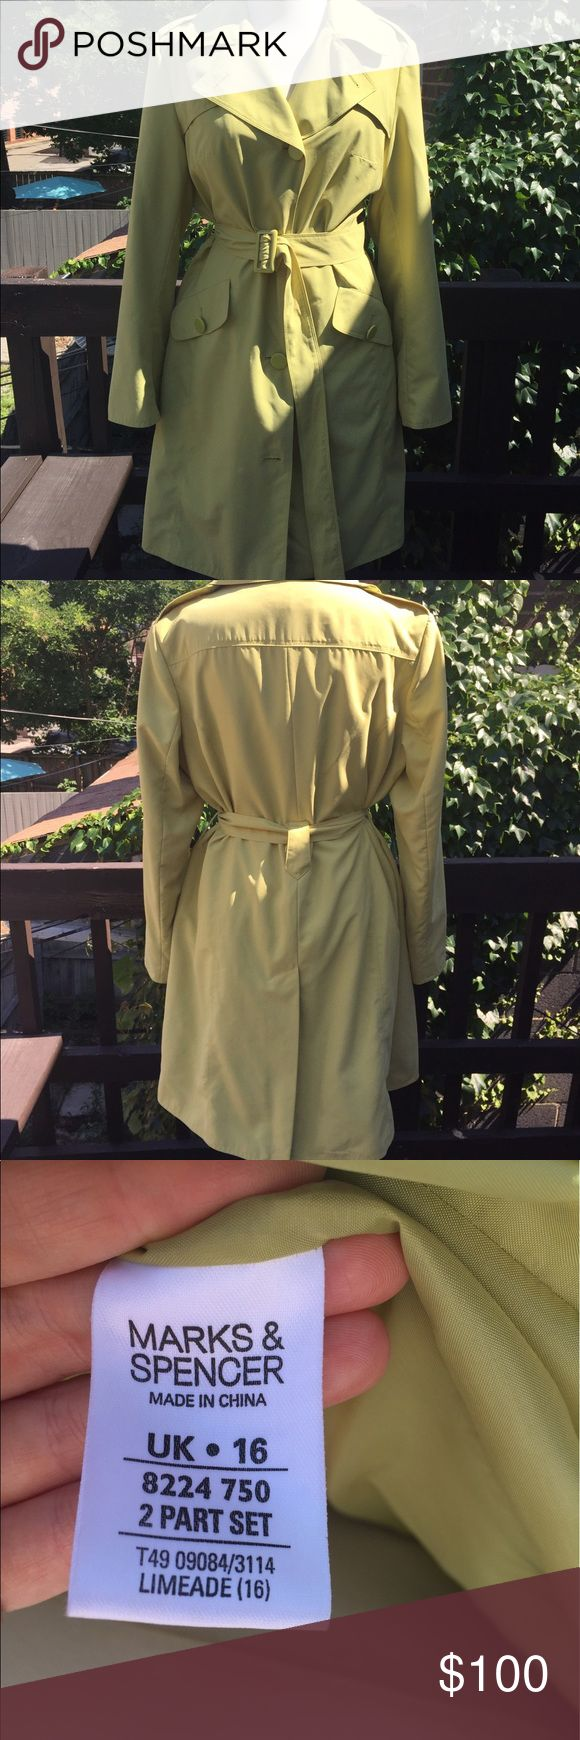 Trench Beautiful trench coat, super cute and stylish, amazing color, size 16 UK but it fits 12 US, feel free to ask for additional measurements. Marks & Spencer Jackets & Coats Trench Coats